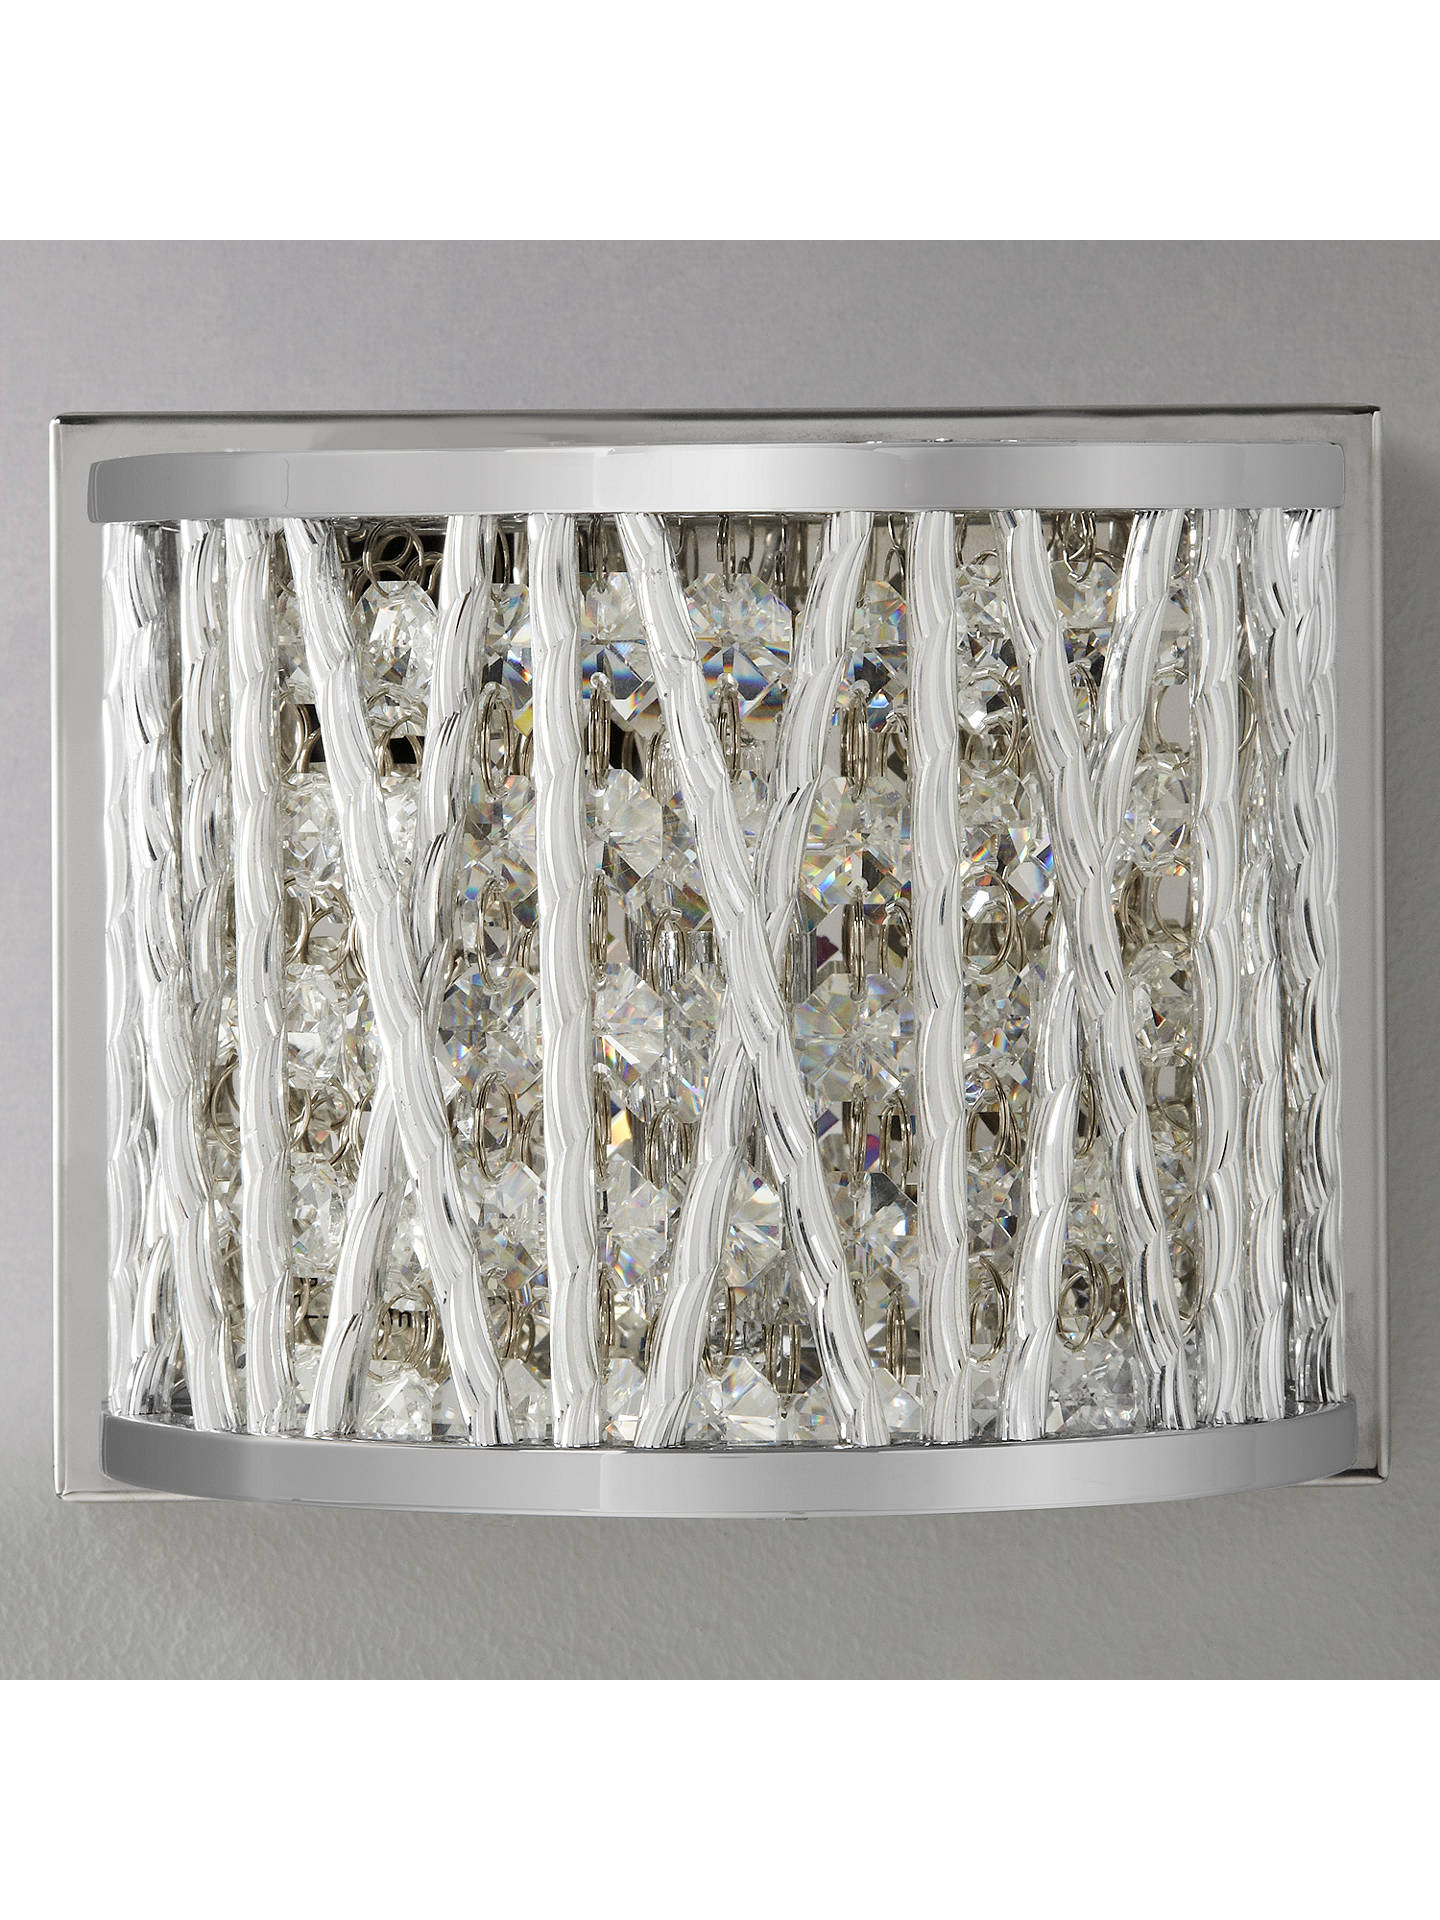 Buy John Lewis & Partners Emilia Crystal Drum Wall Light Online at johnlewis.com